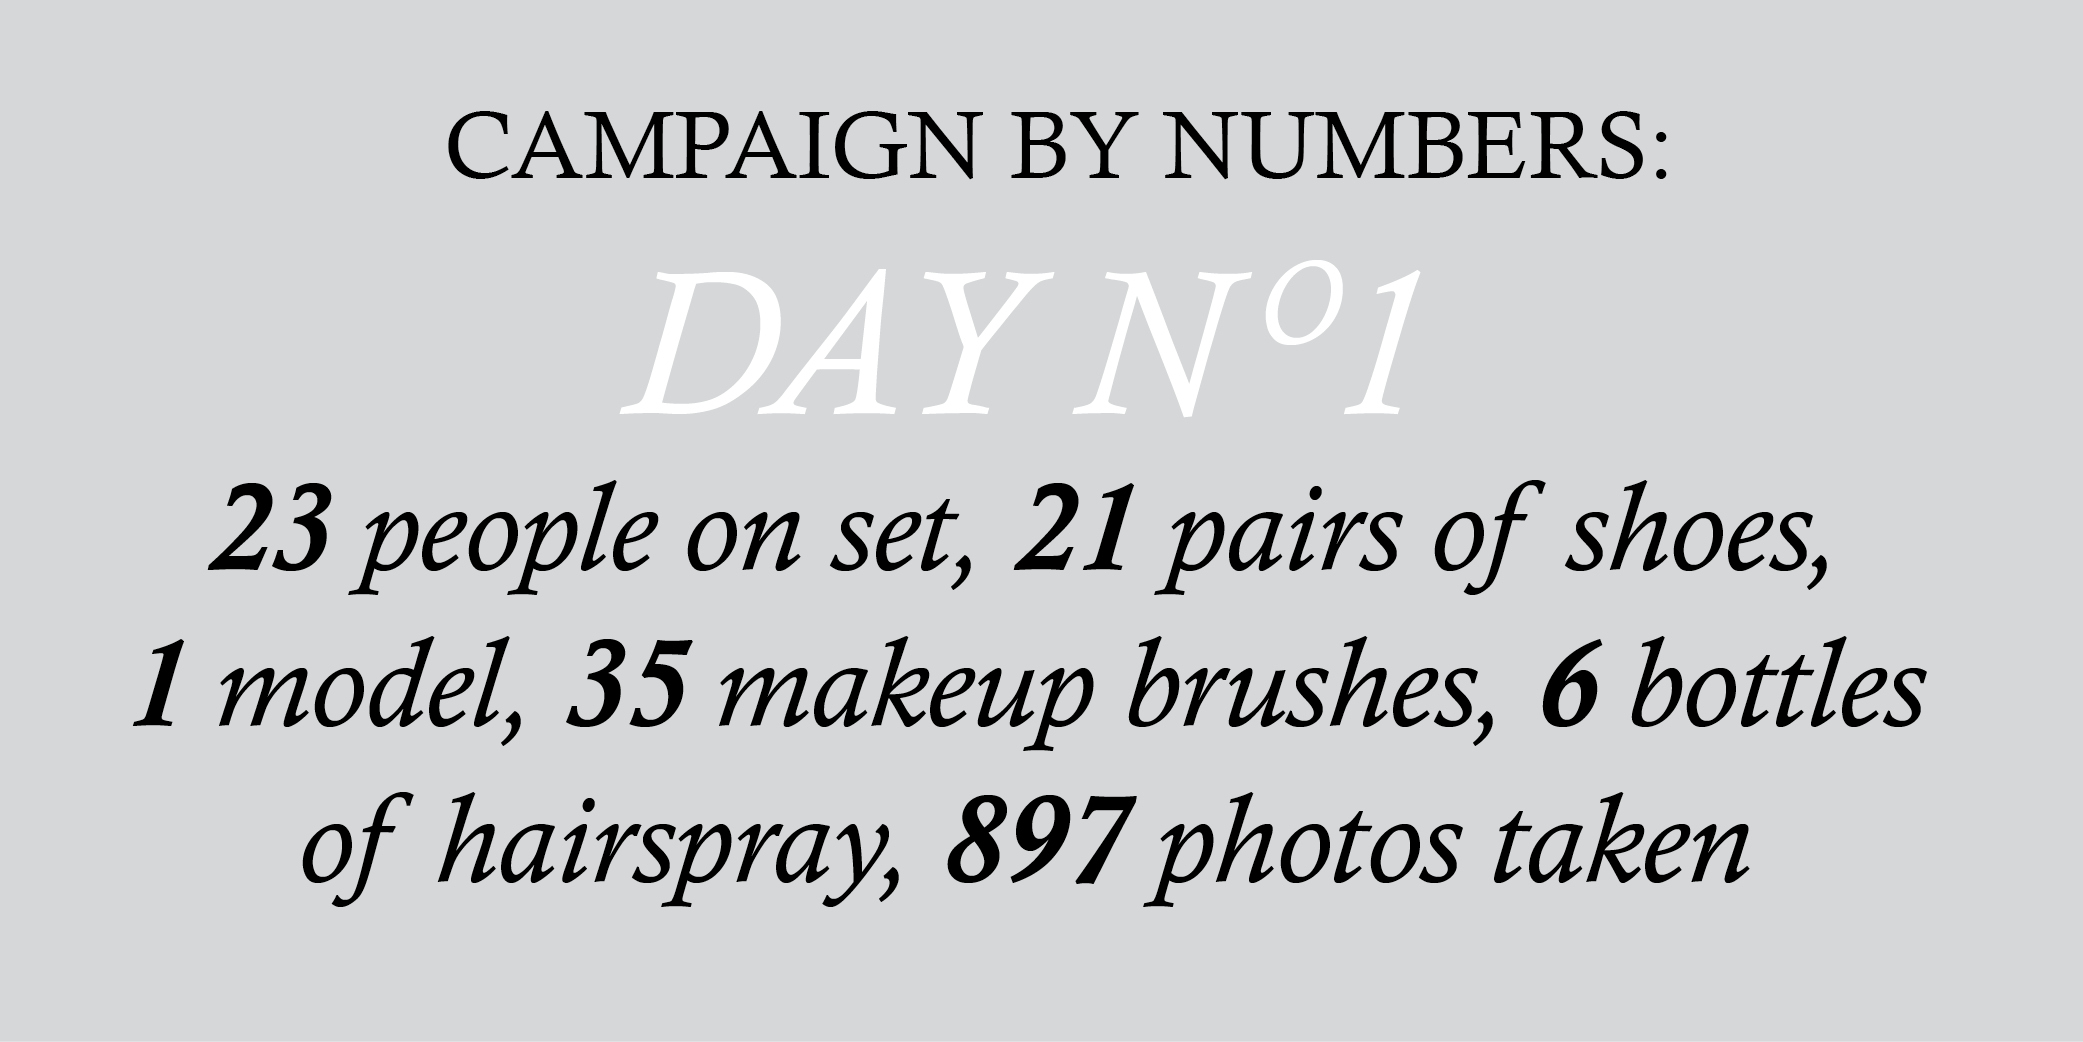 CAMPAIGN BY NUMBERS1